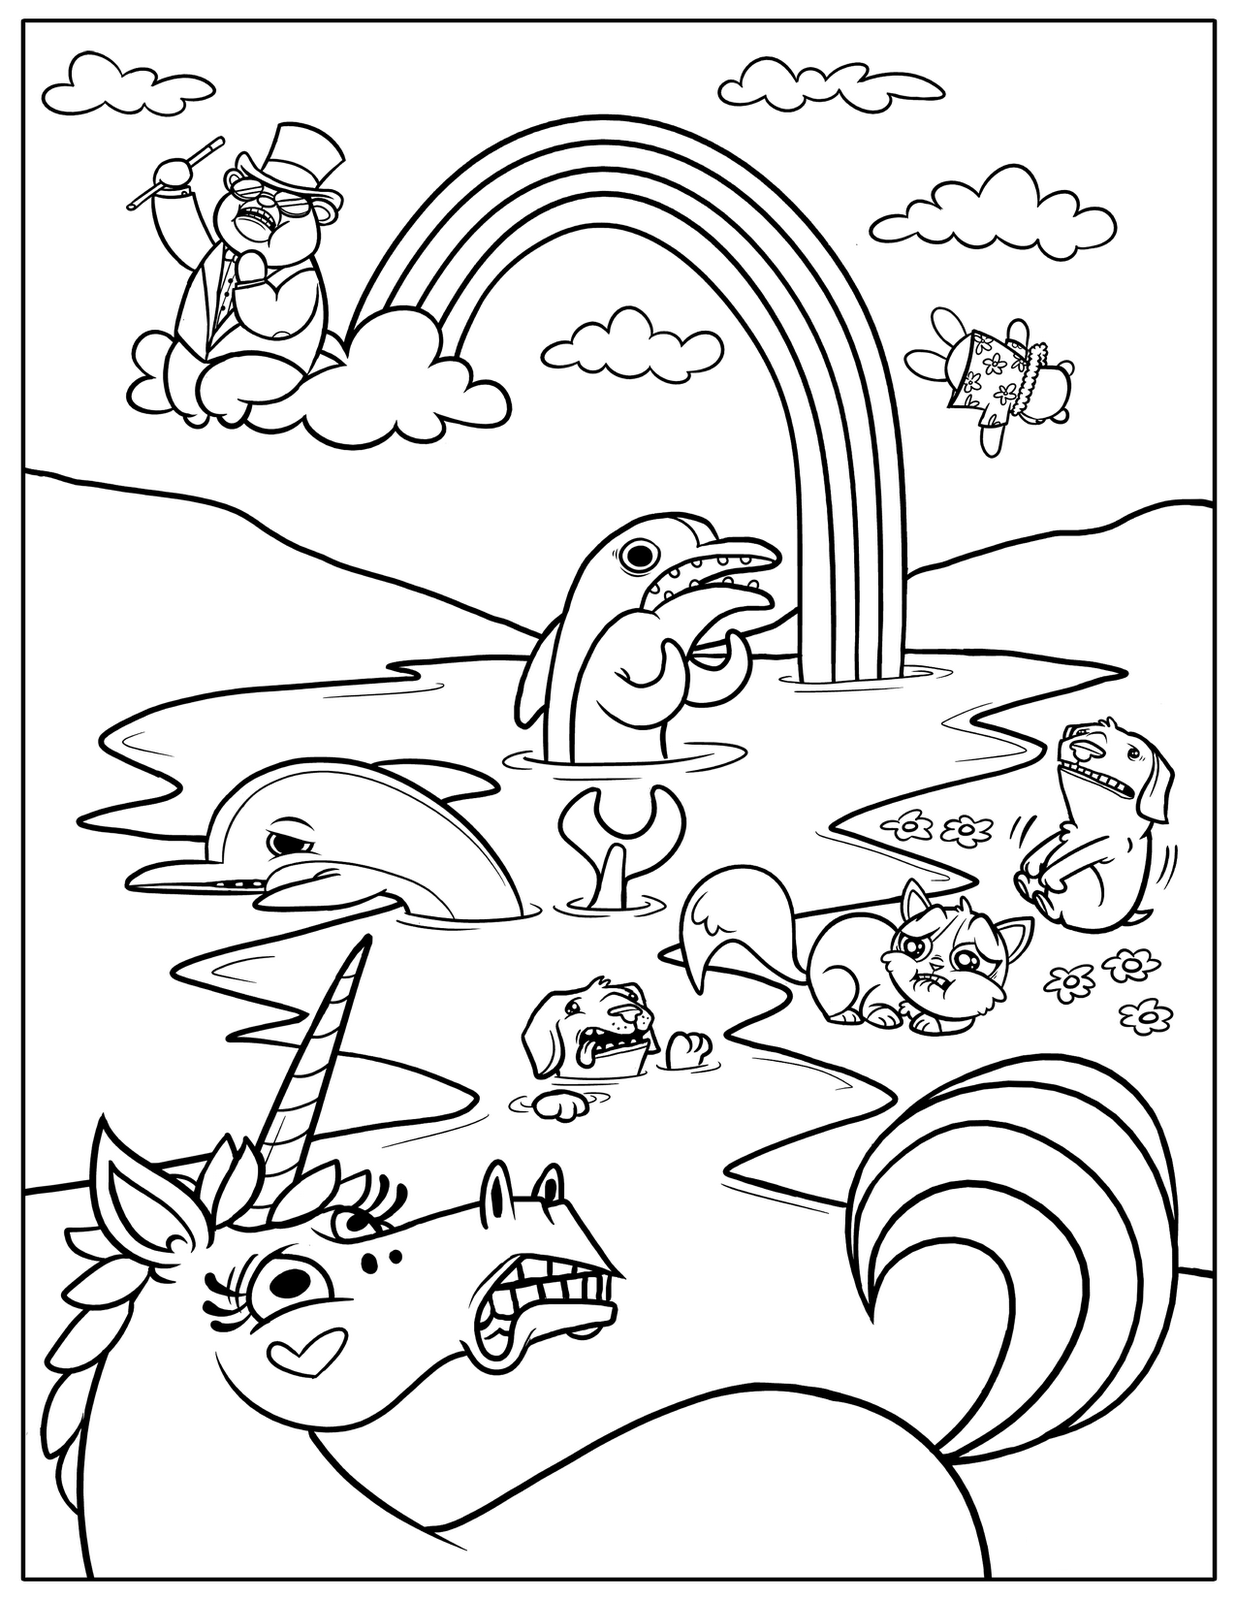 Free Printable Rainbow Coloring Pages For Kids Print Coloring Pages For